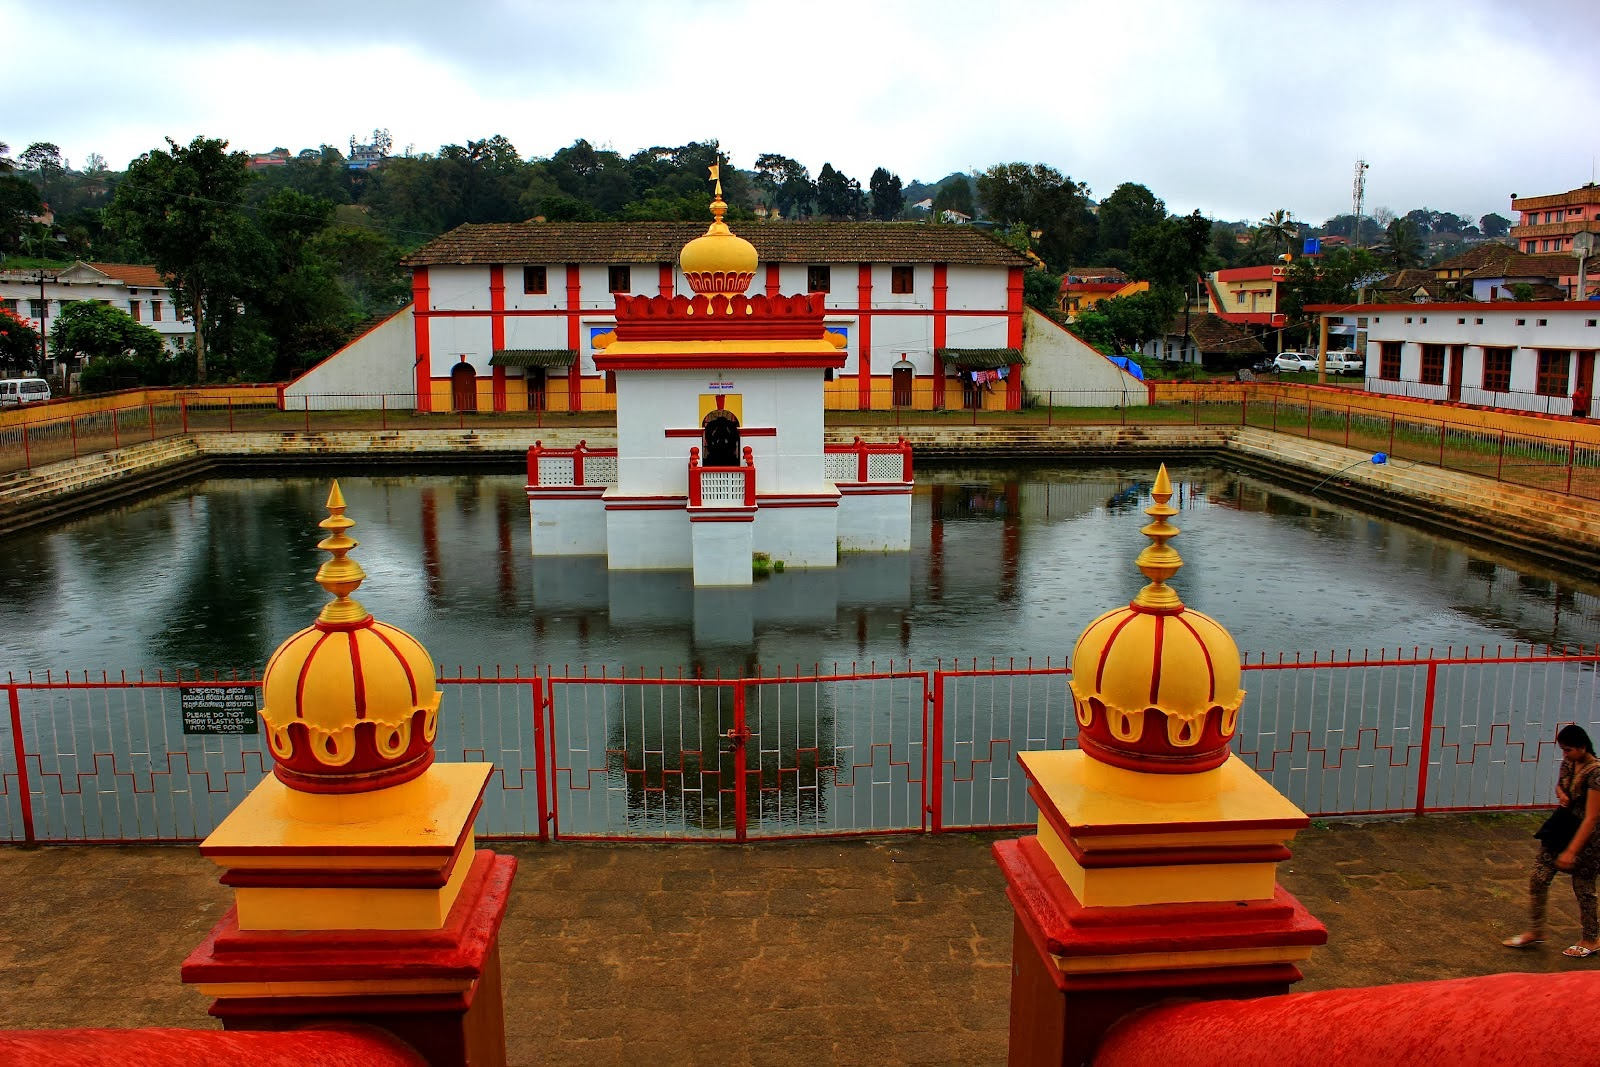 Visiting places of india coorg or kodagu karnataka karnataka is often hailed for its quaint most beautiful and oldest temples the omkareshwara temple in coorg was built by lingarajendra in 1820 biocorpaavc Image collections